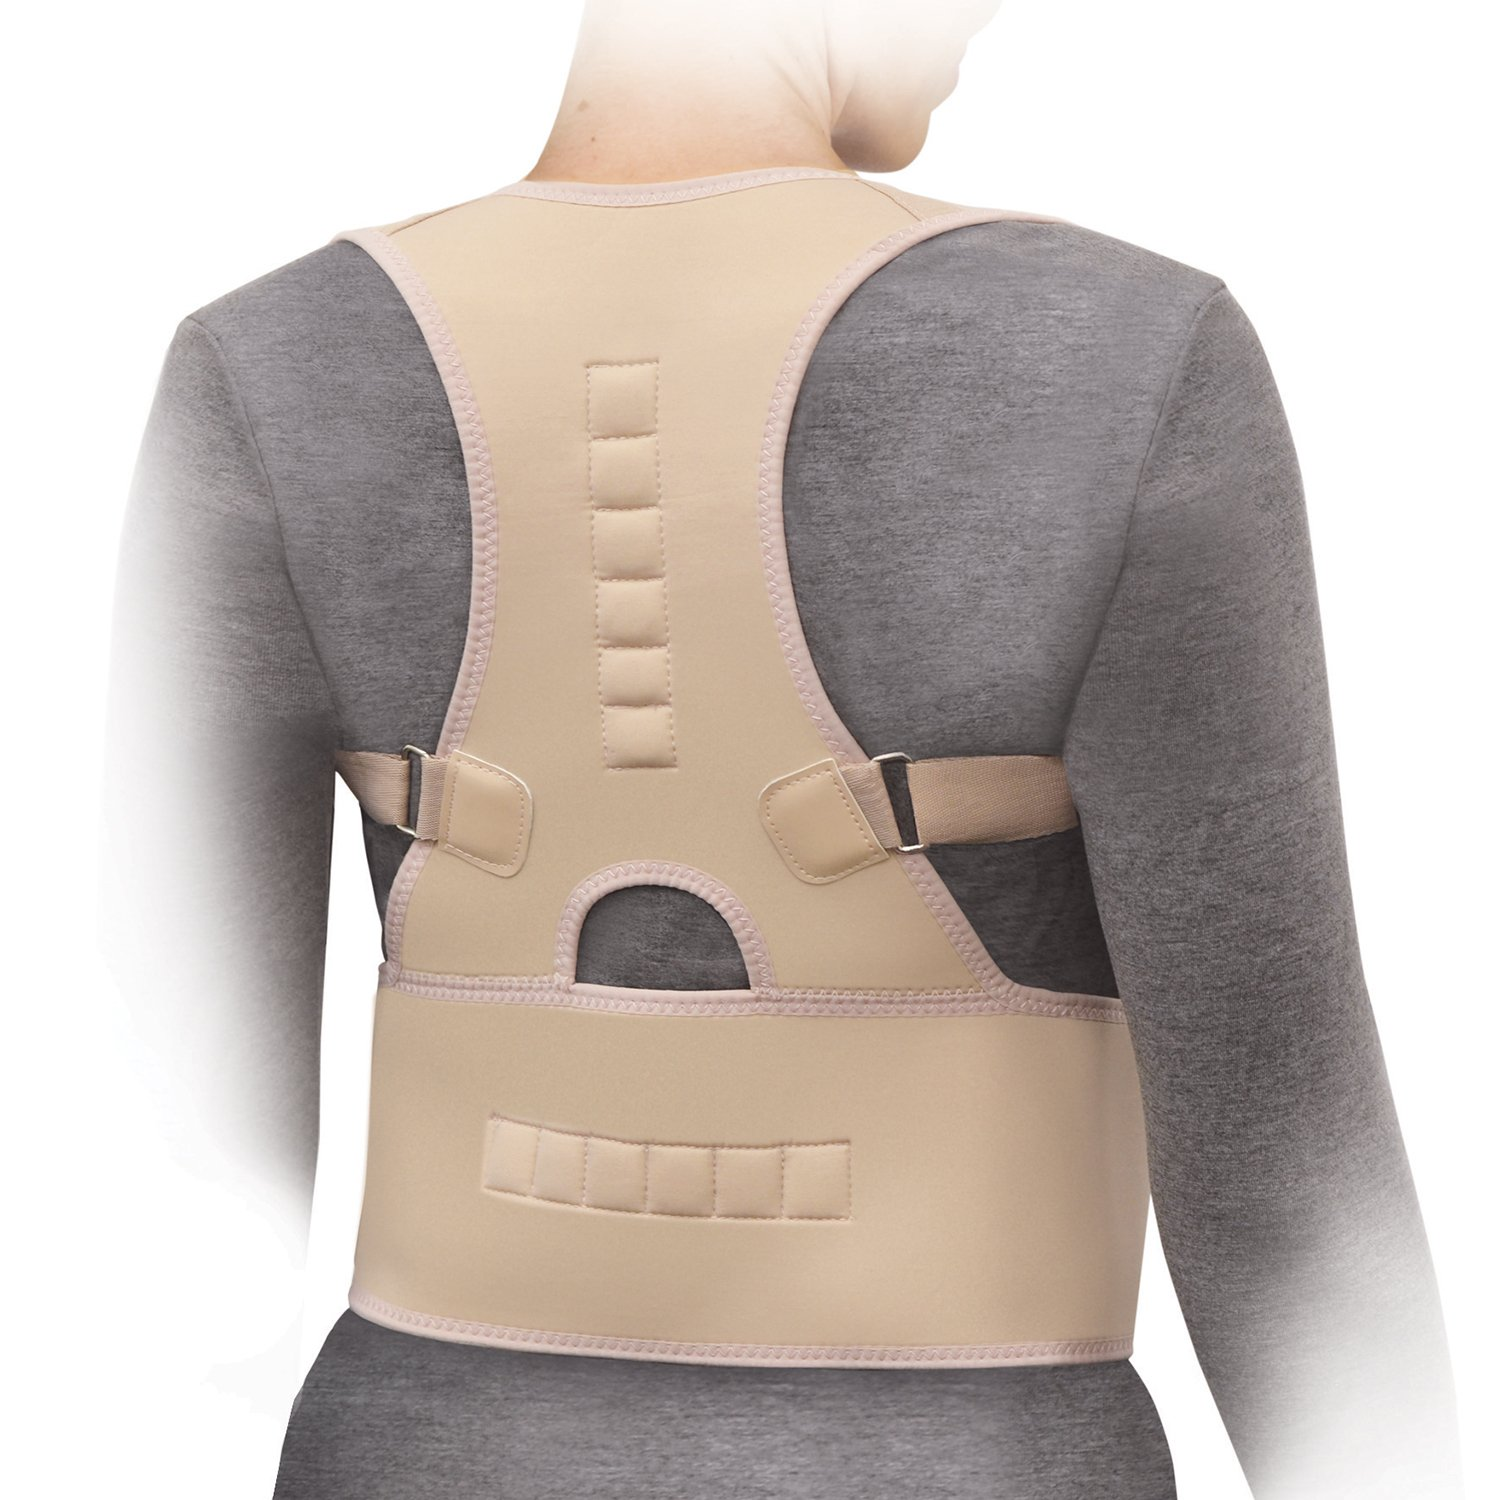 North AmericanTM Magnetic Posture Corrector, Regular, Adjustable 60''-70'' XX-LARGE by North American Health and Wellness